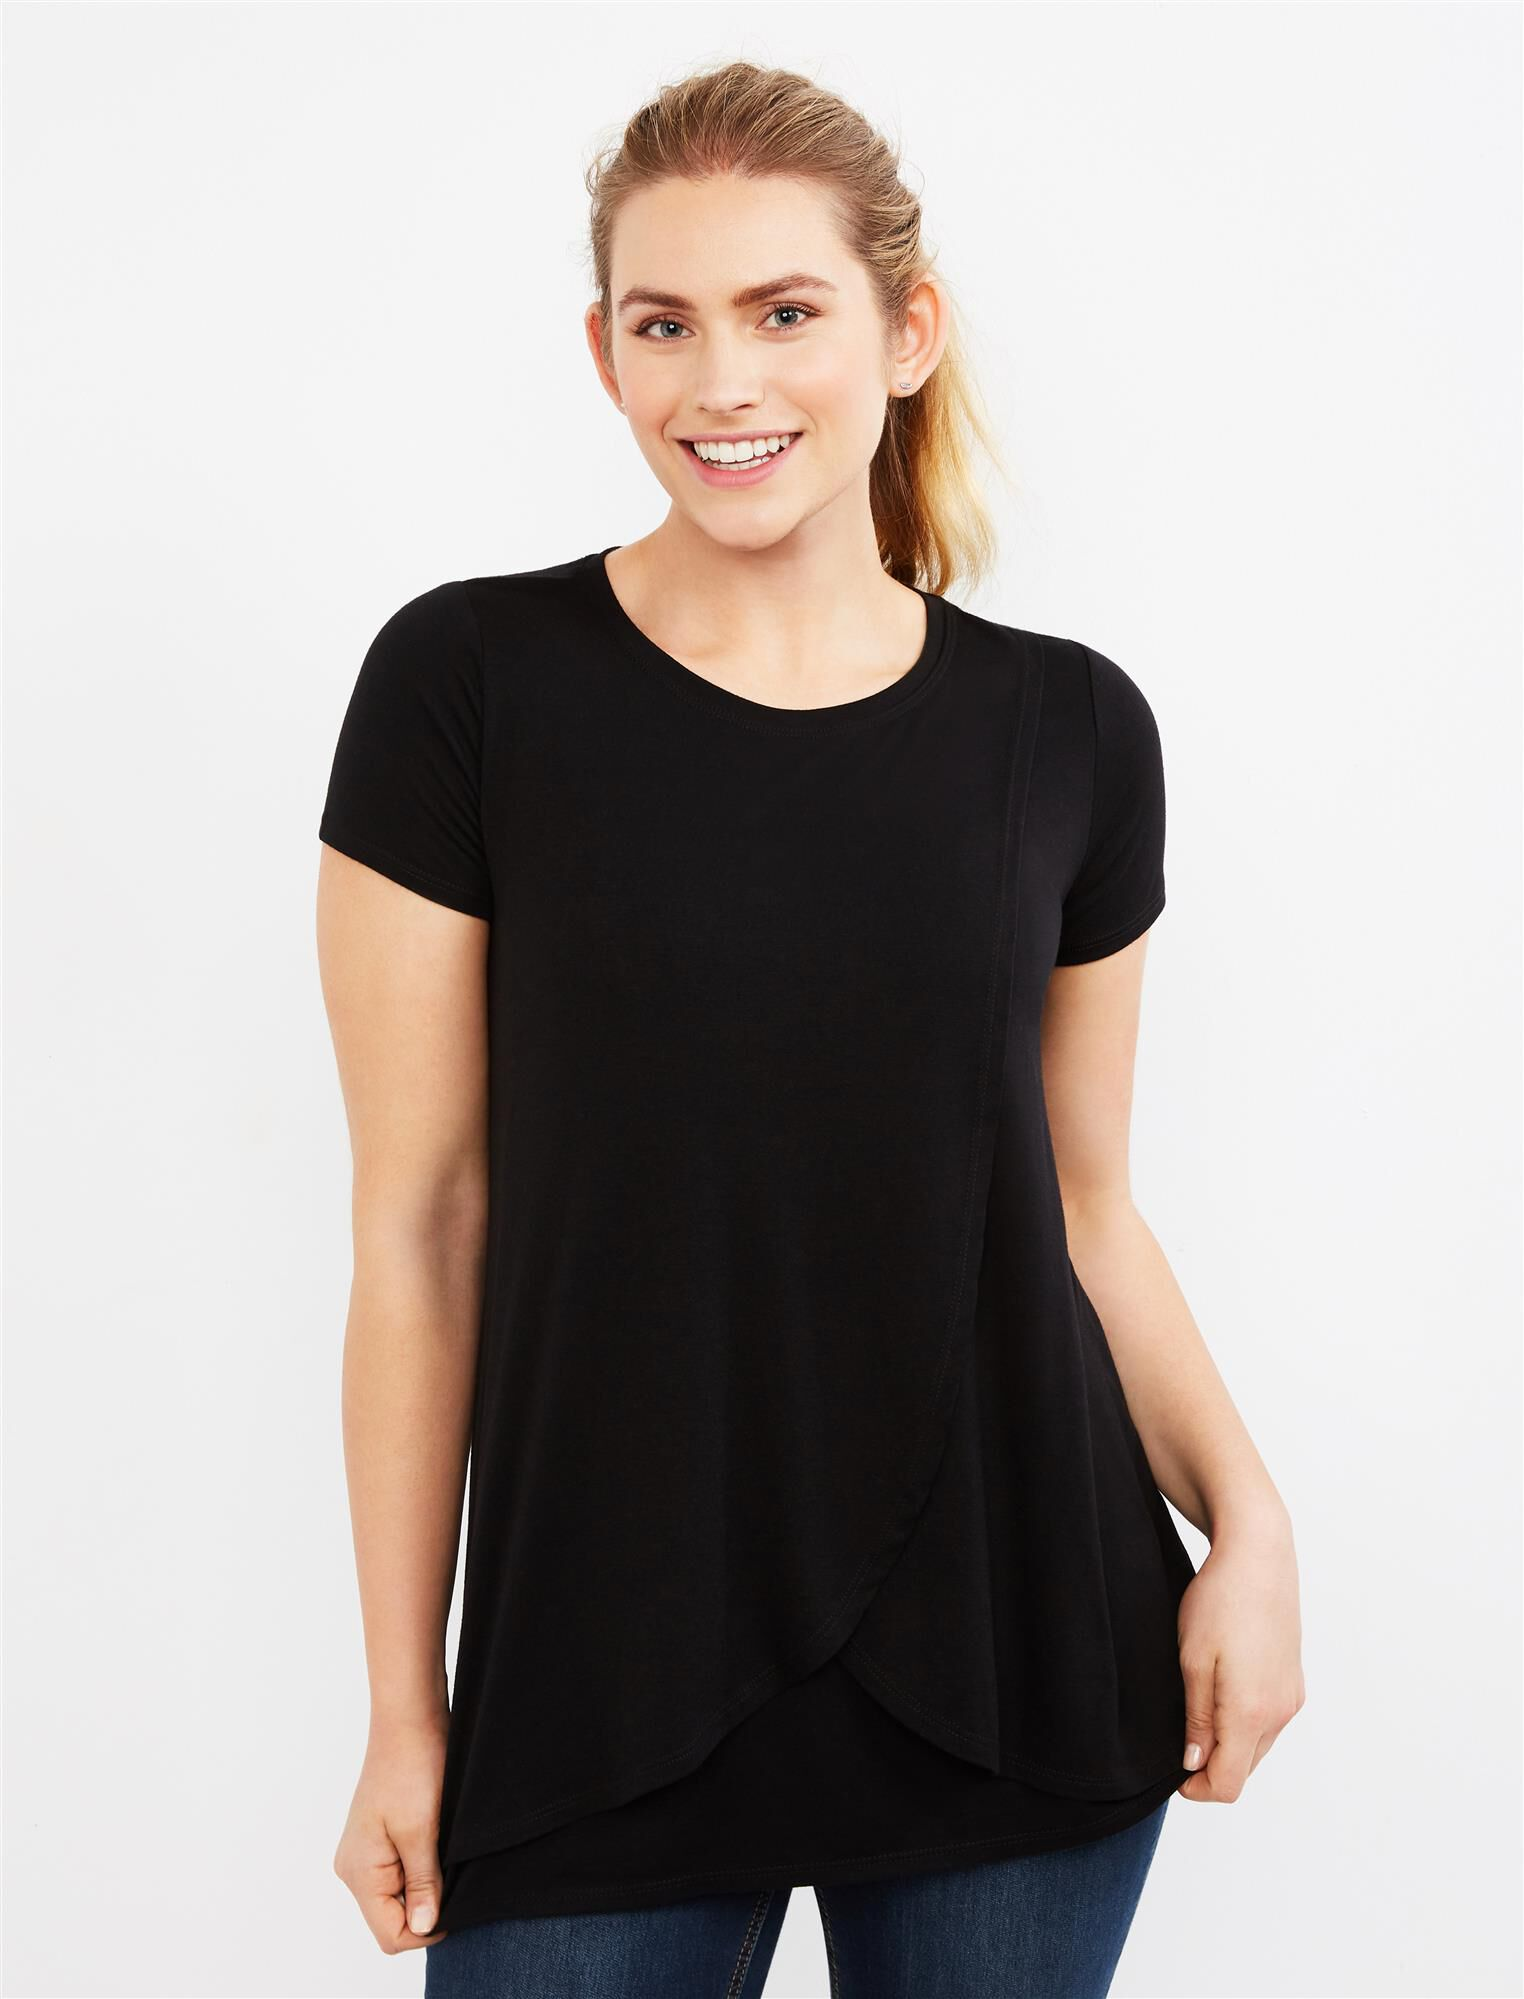 Short Sleeve Tulip Layered Nursing T-shirt- Solid